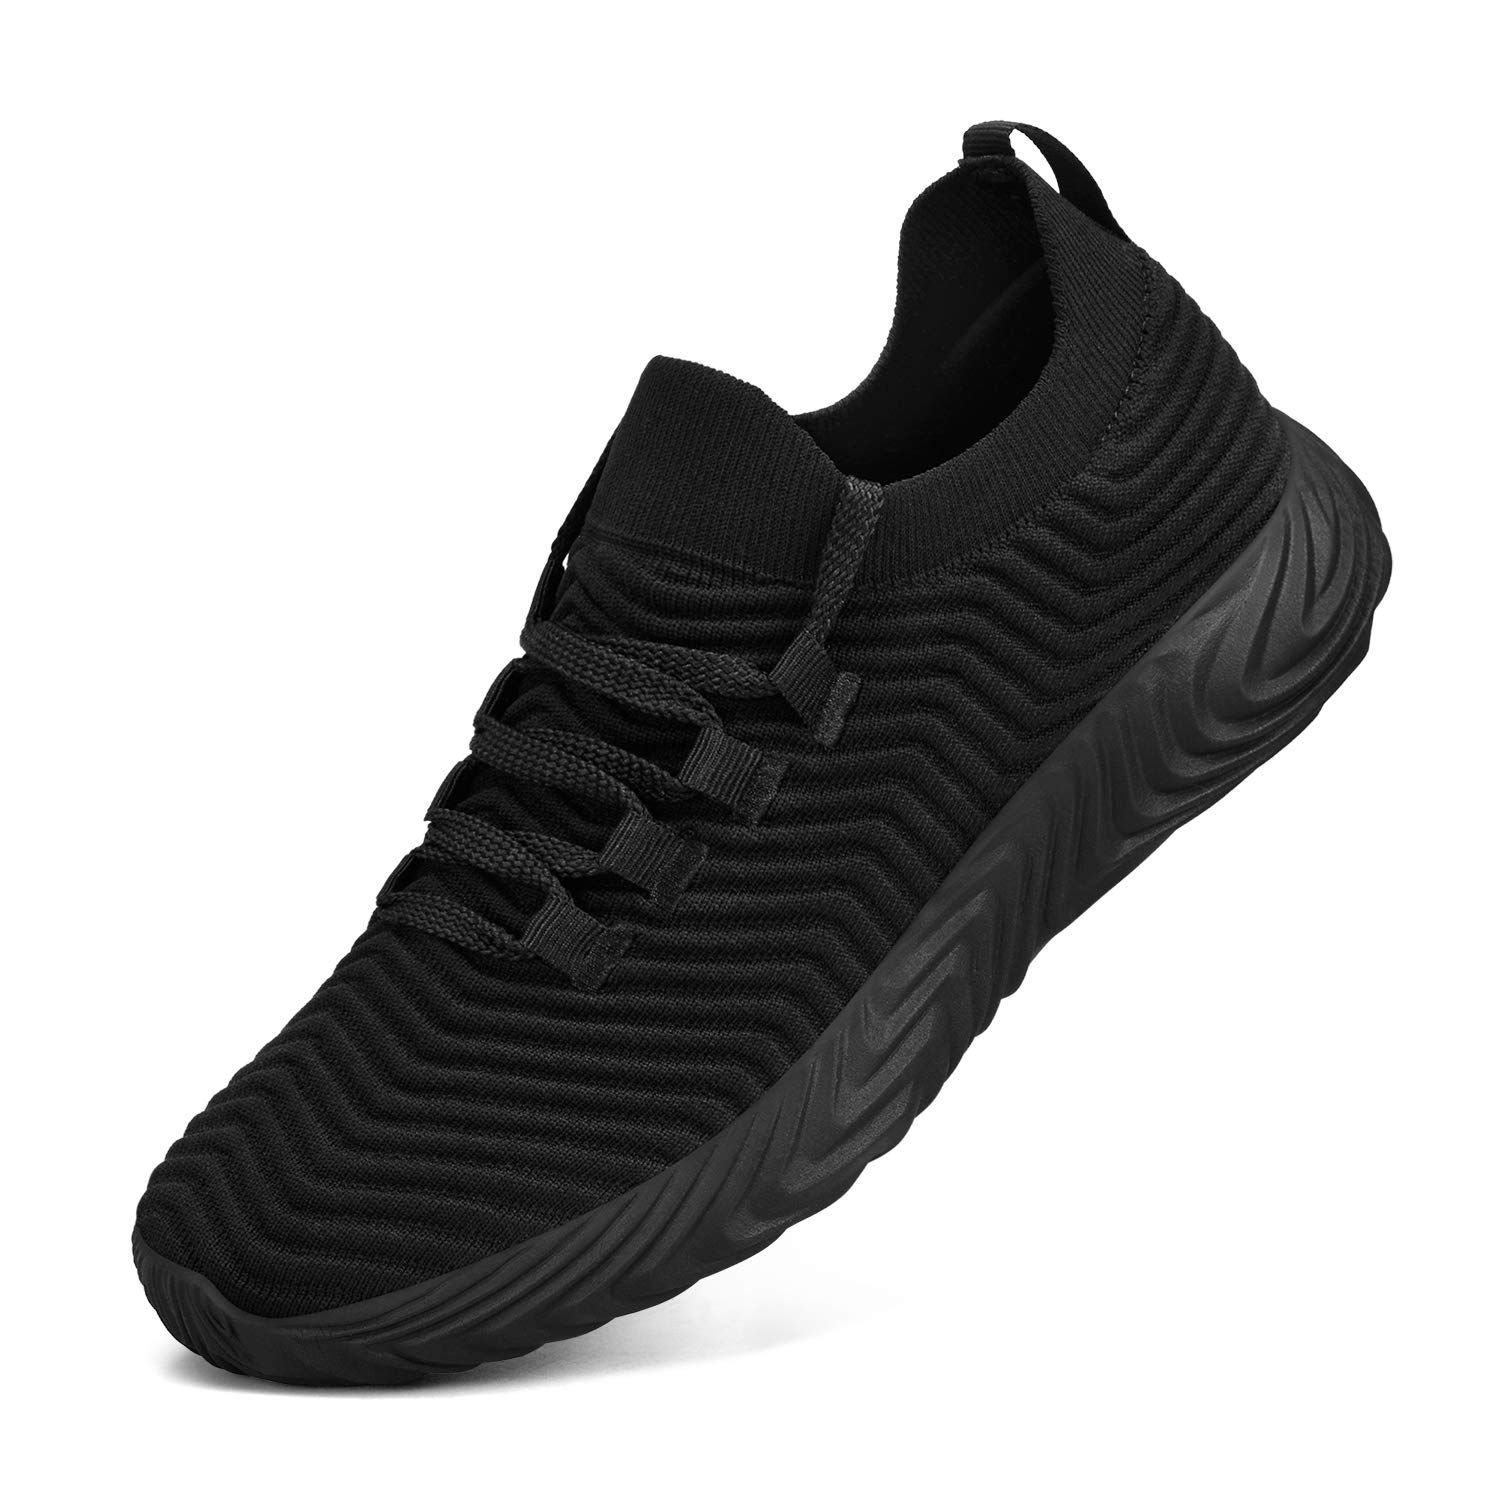 Feetmat Shoes for Women Ultra Lightweight Lace up Workout Sneakers Black 7 M US